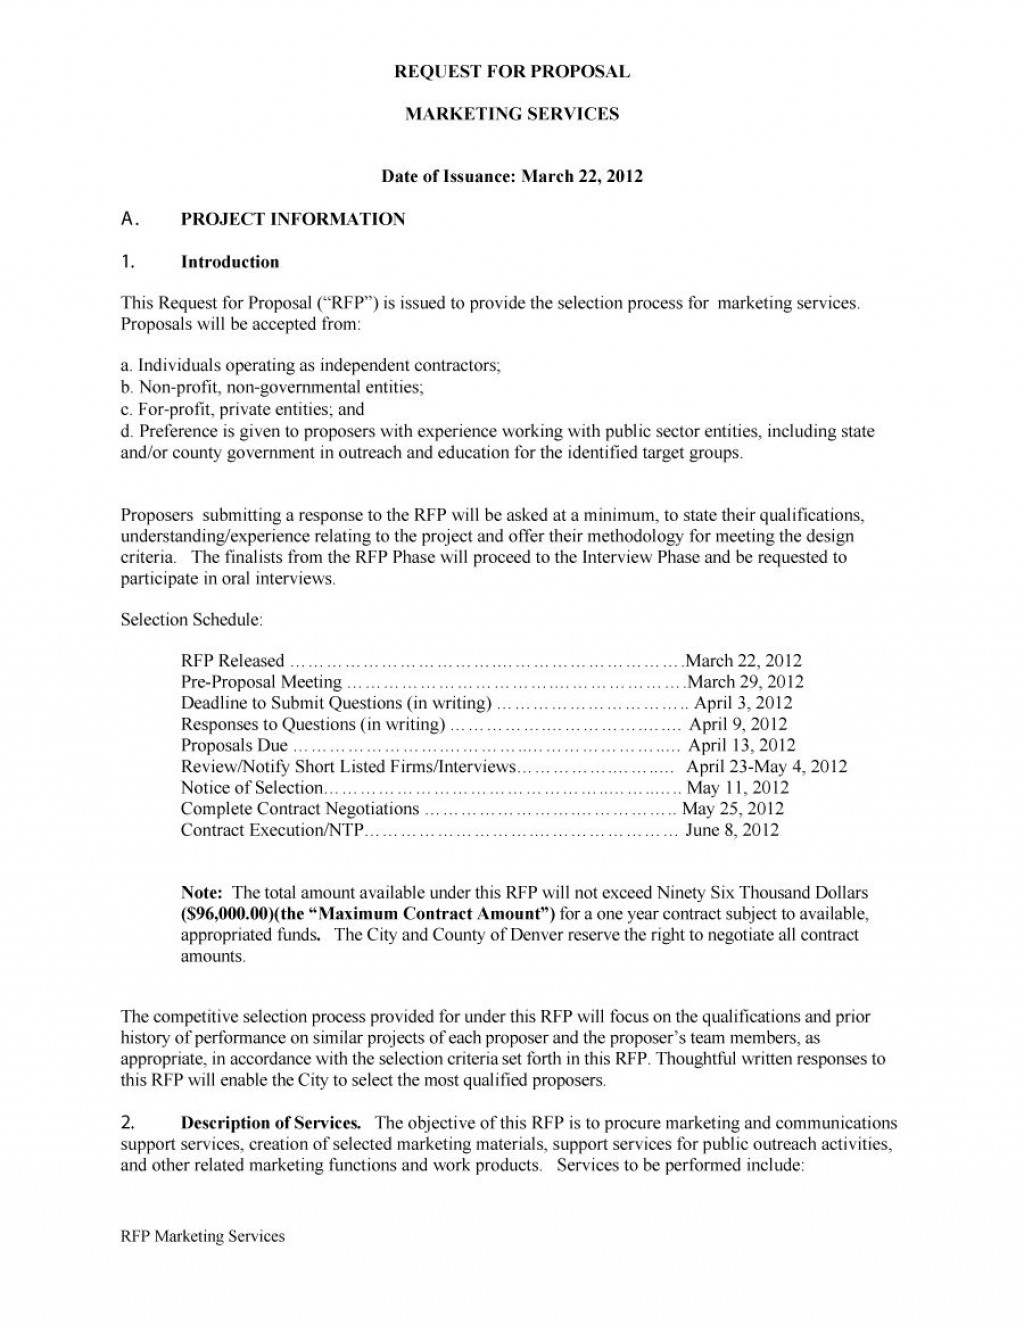 006 Formidable Request For Proposal Rfp Template Construction Sample Large